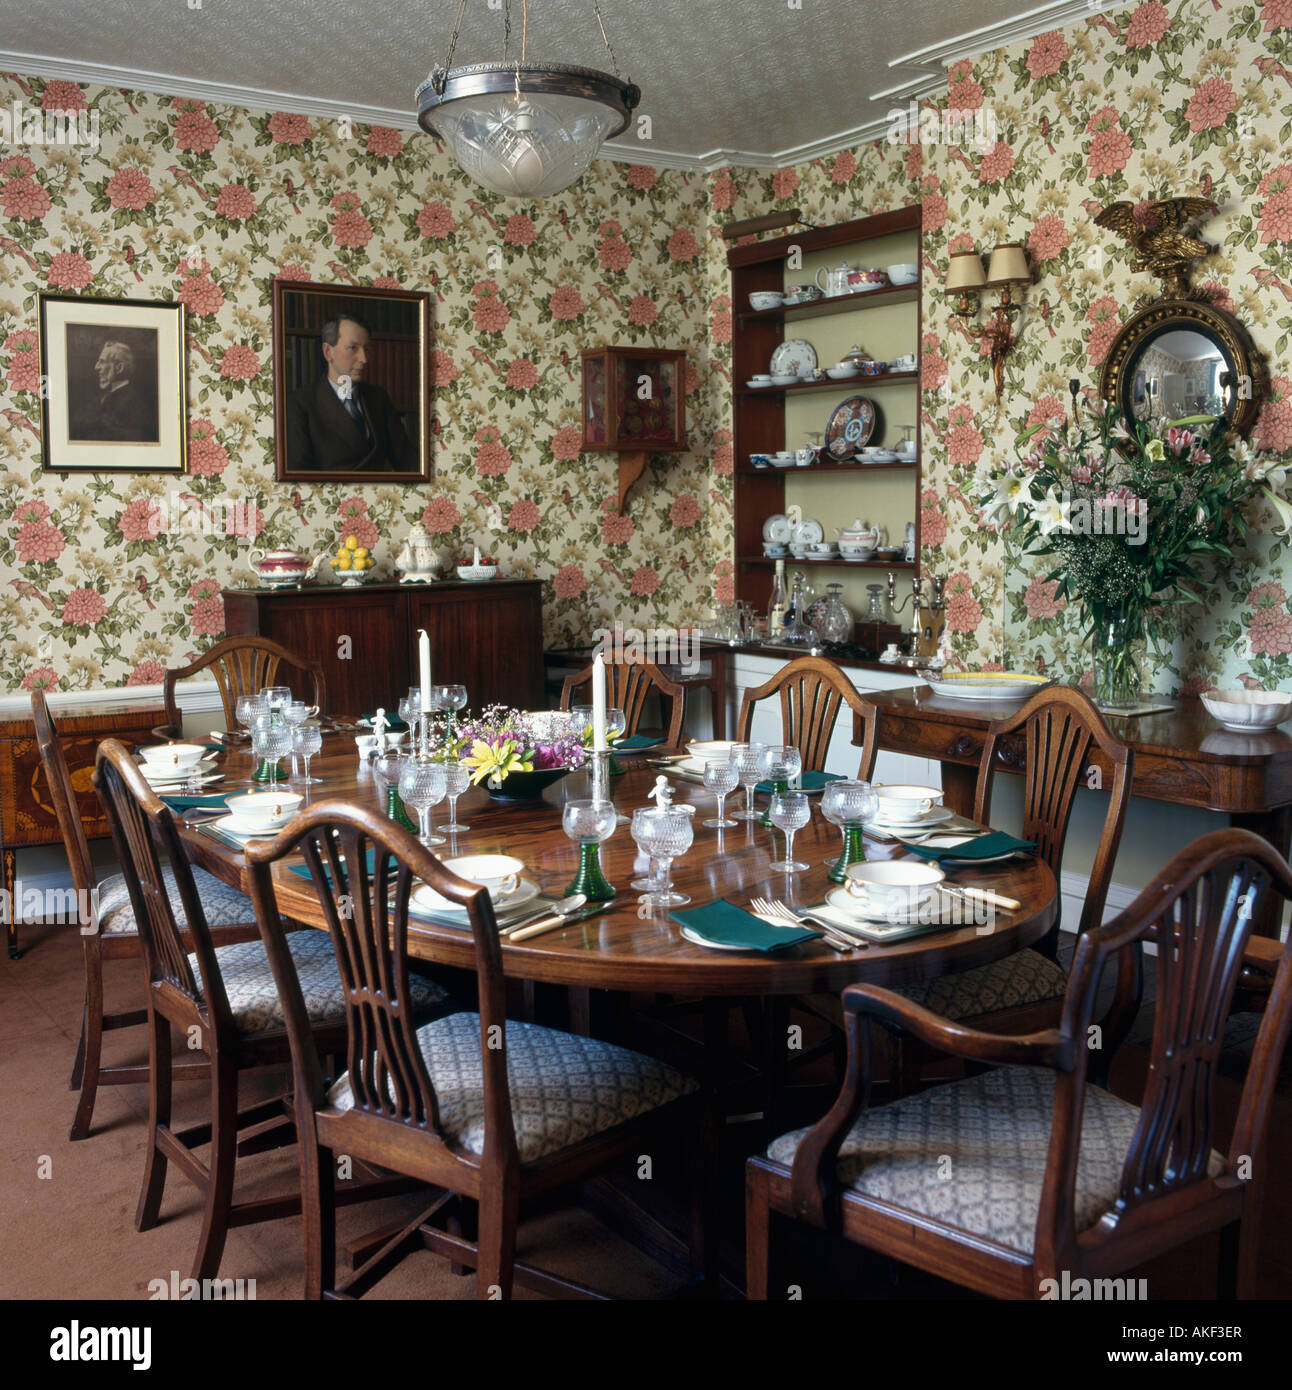 Floral Wallpaper In Formal Dining Room With Place Settings On The Table